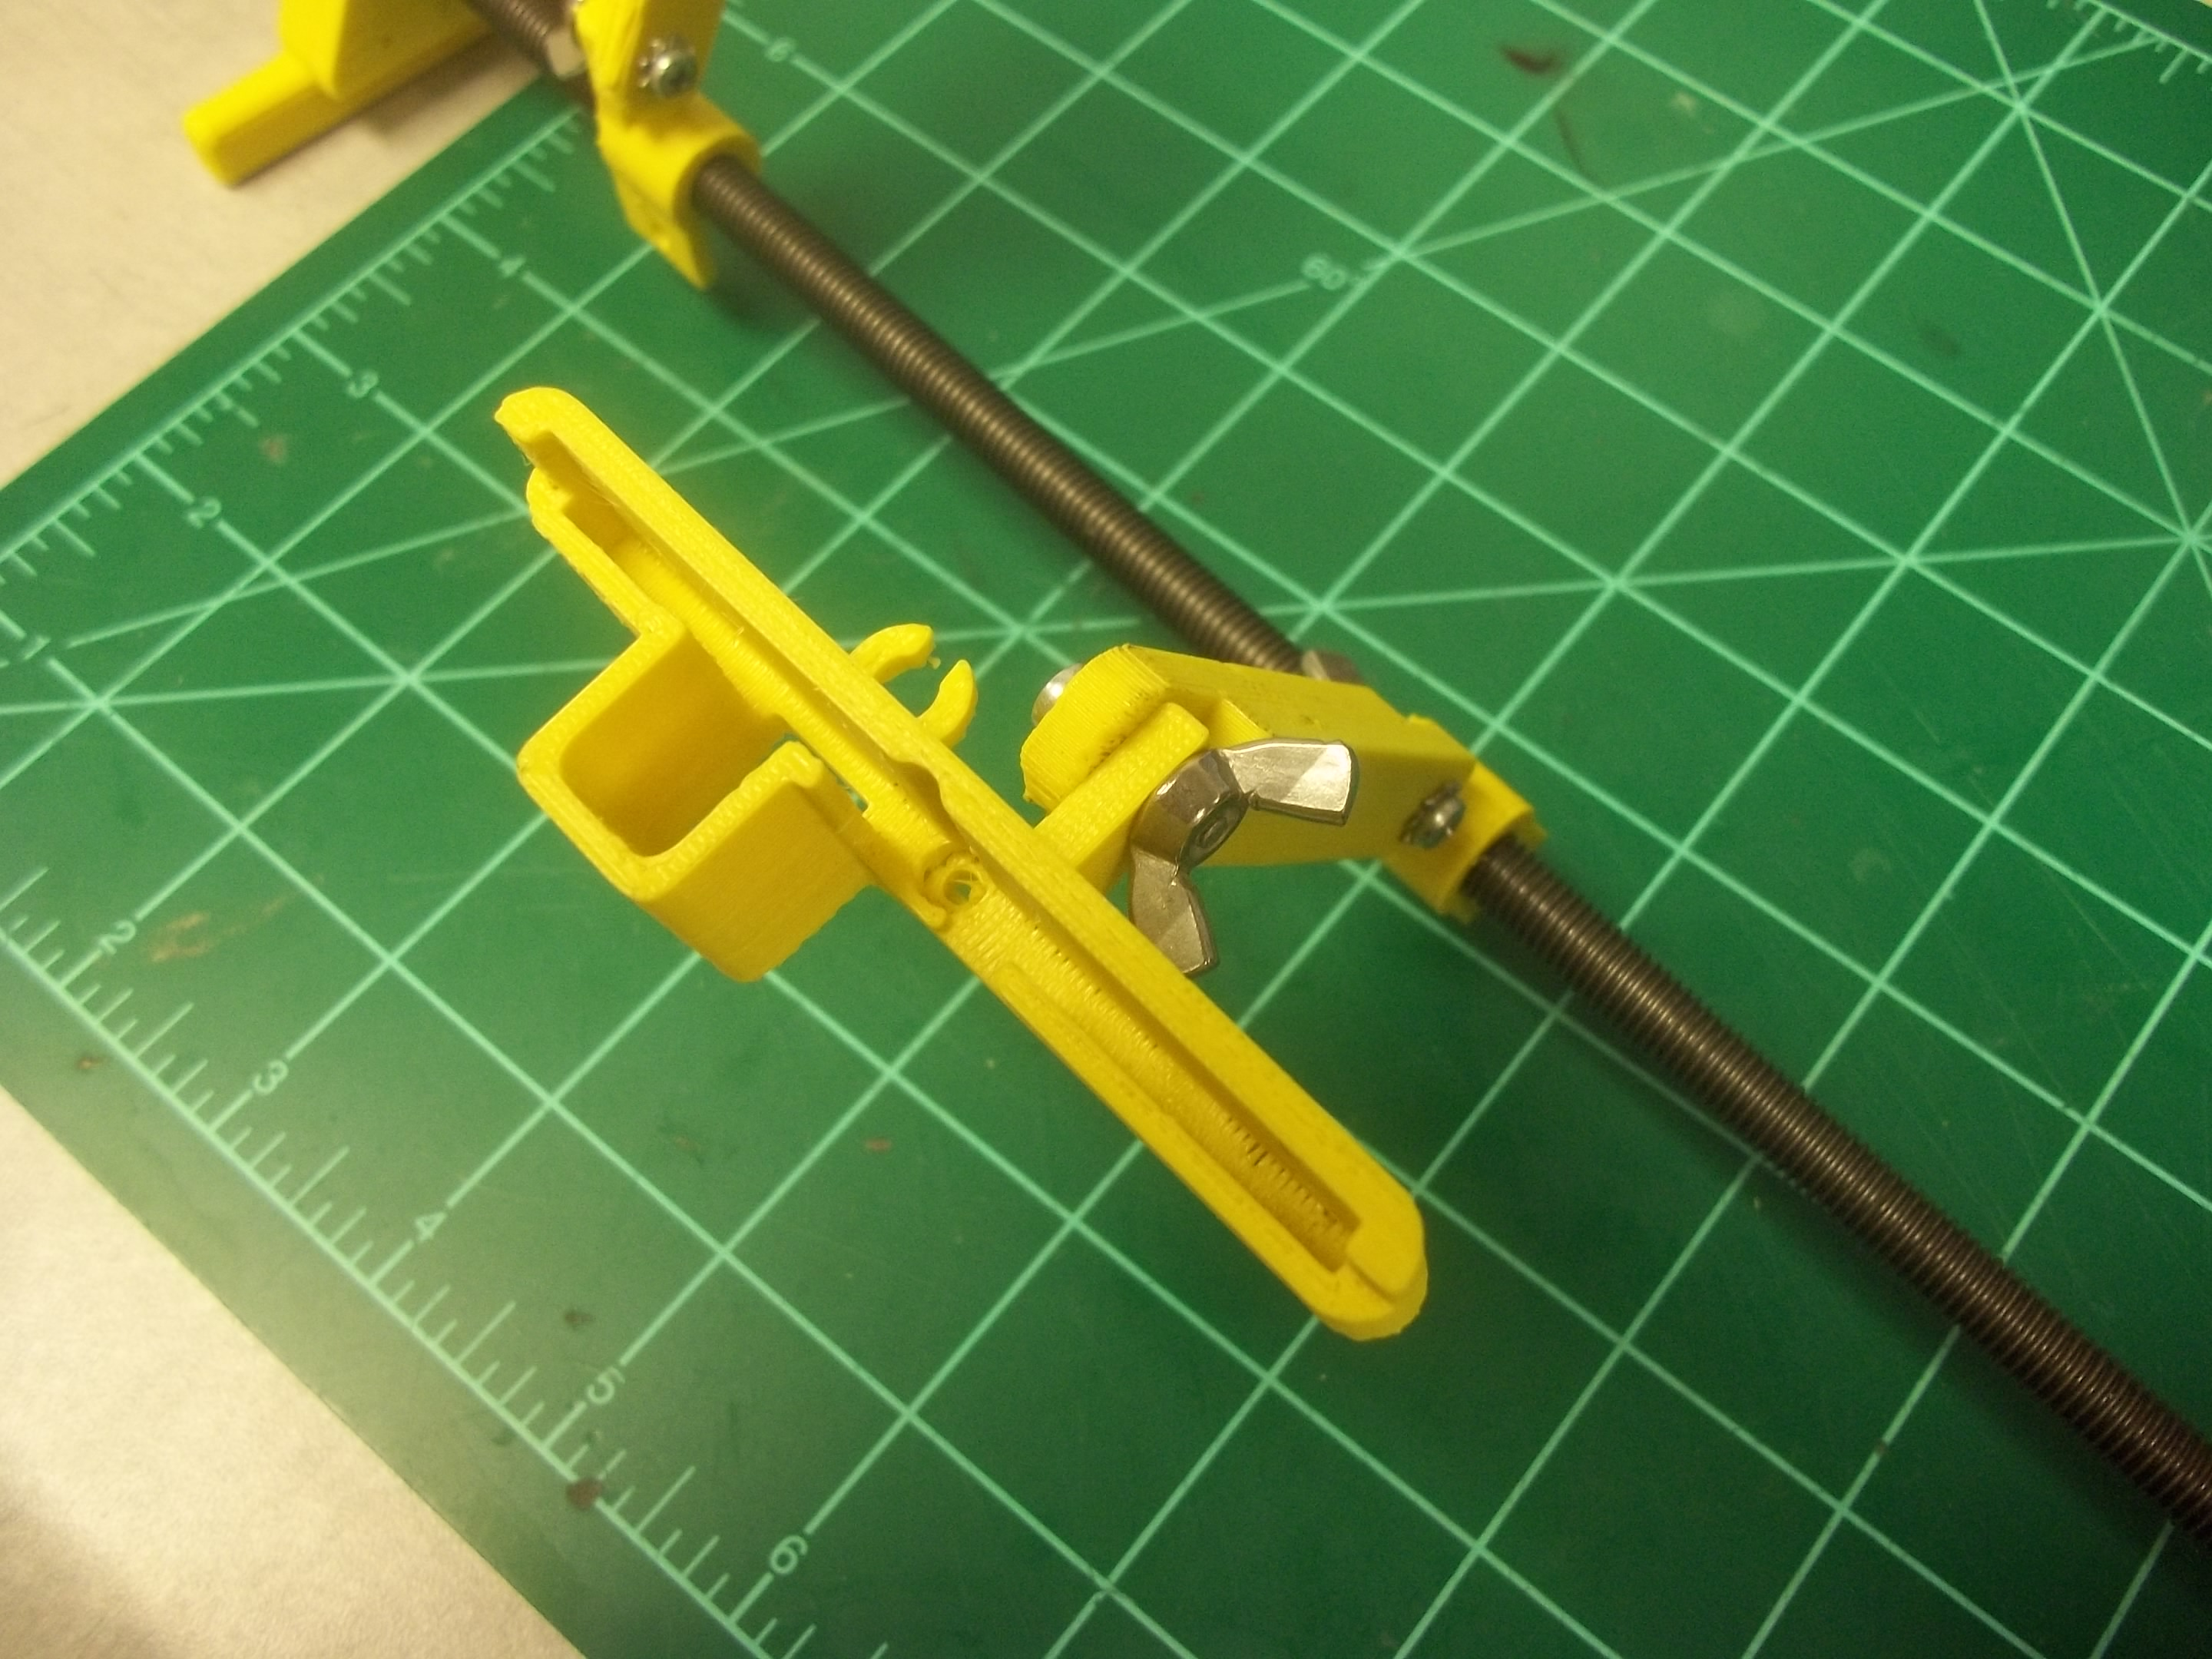 Picture of Attach the Main Board Mount to the Center Extension Arm